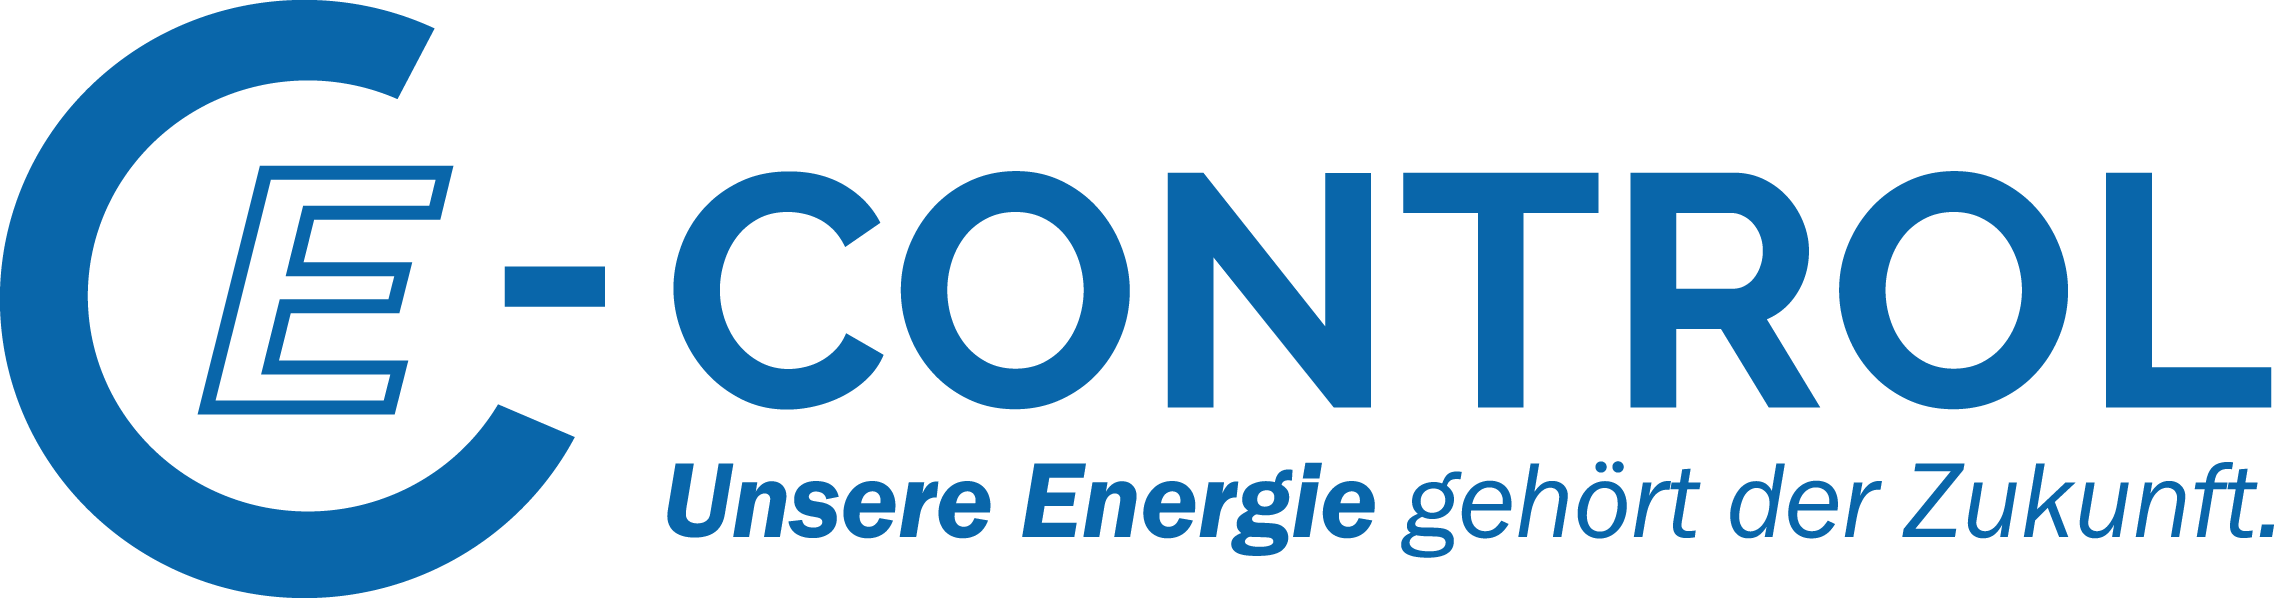 E-control Logo